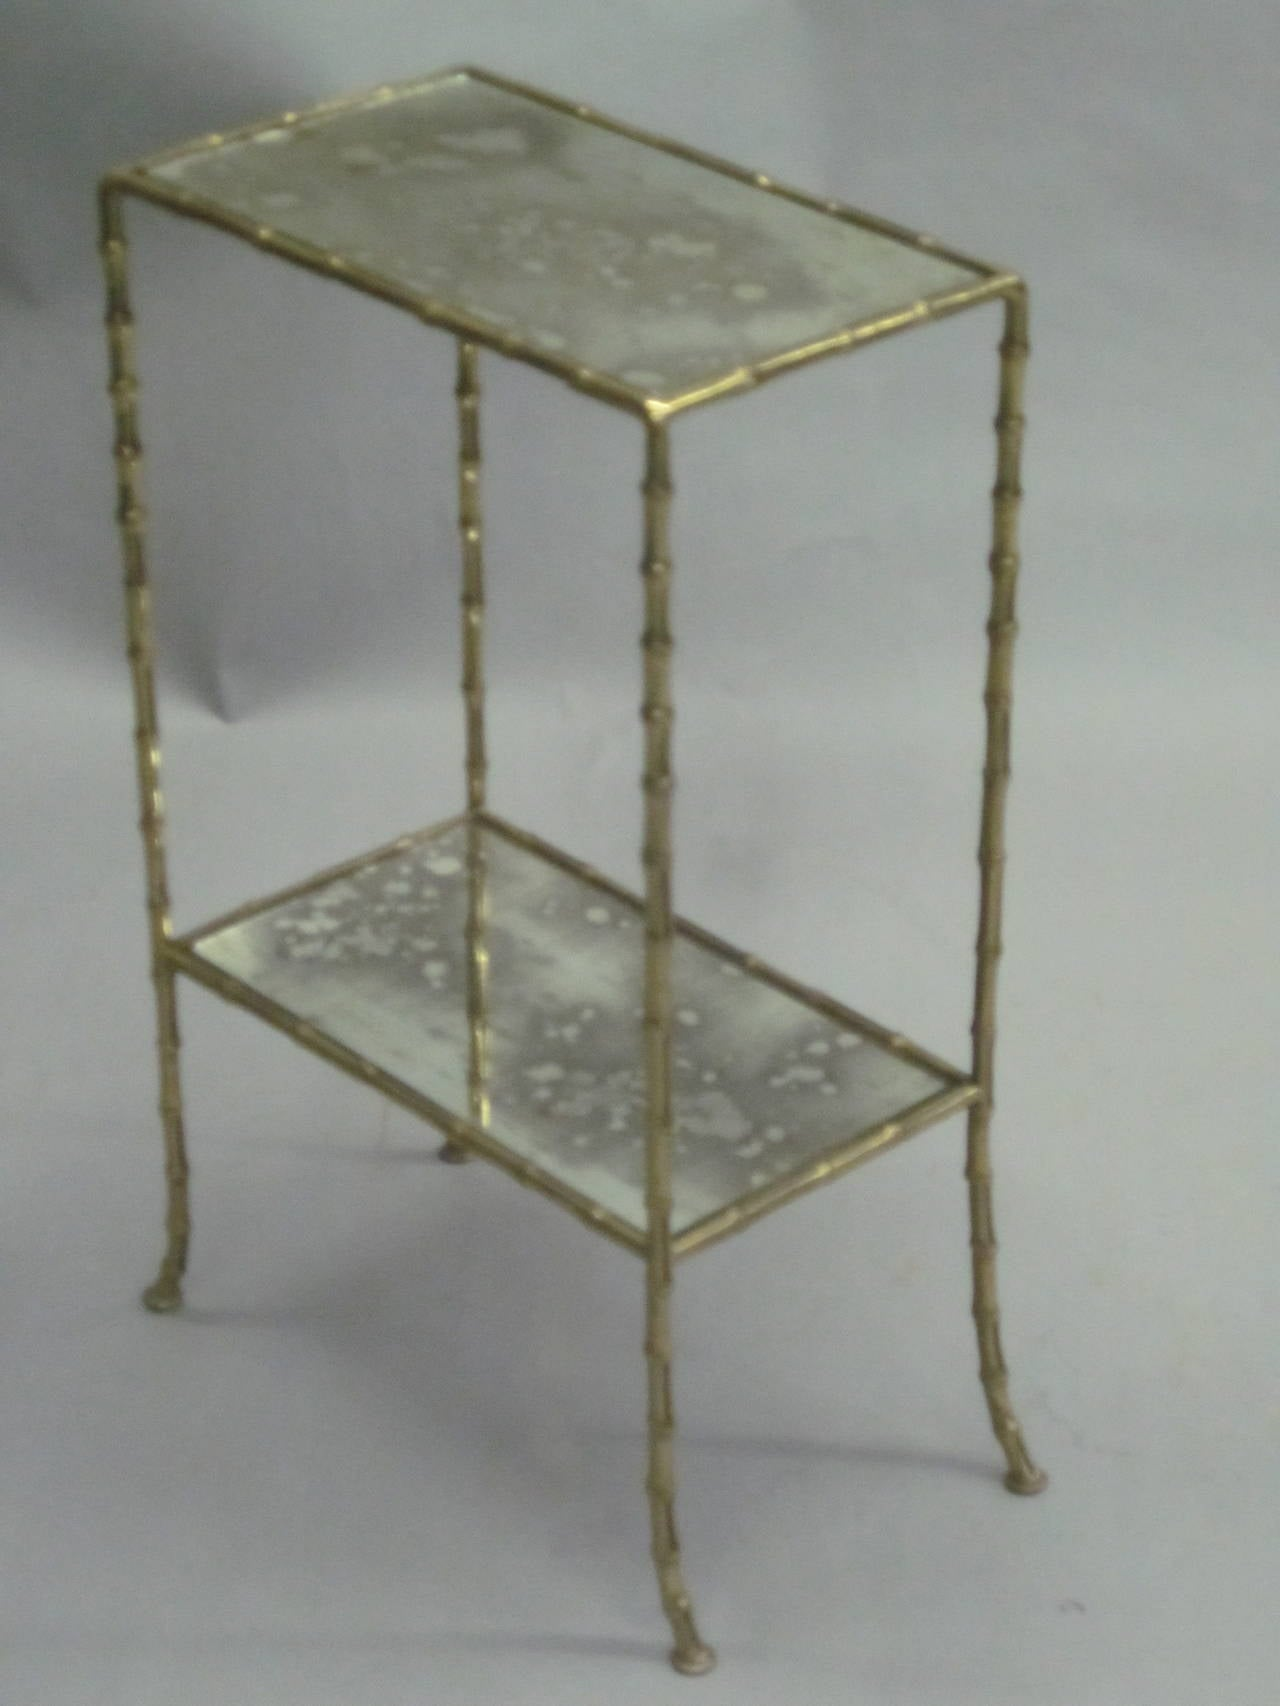 Pair of Brass Faux Bamboo and Mirrored Side Tables by Maison Baguès, France 2